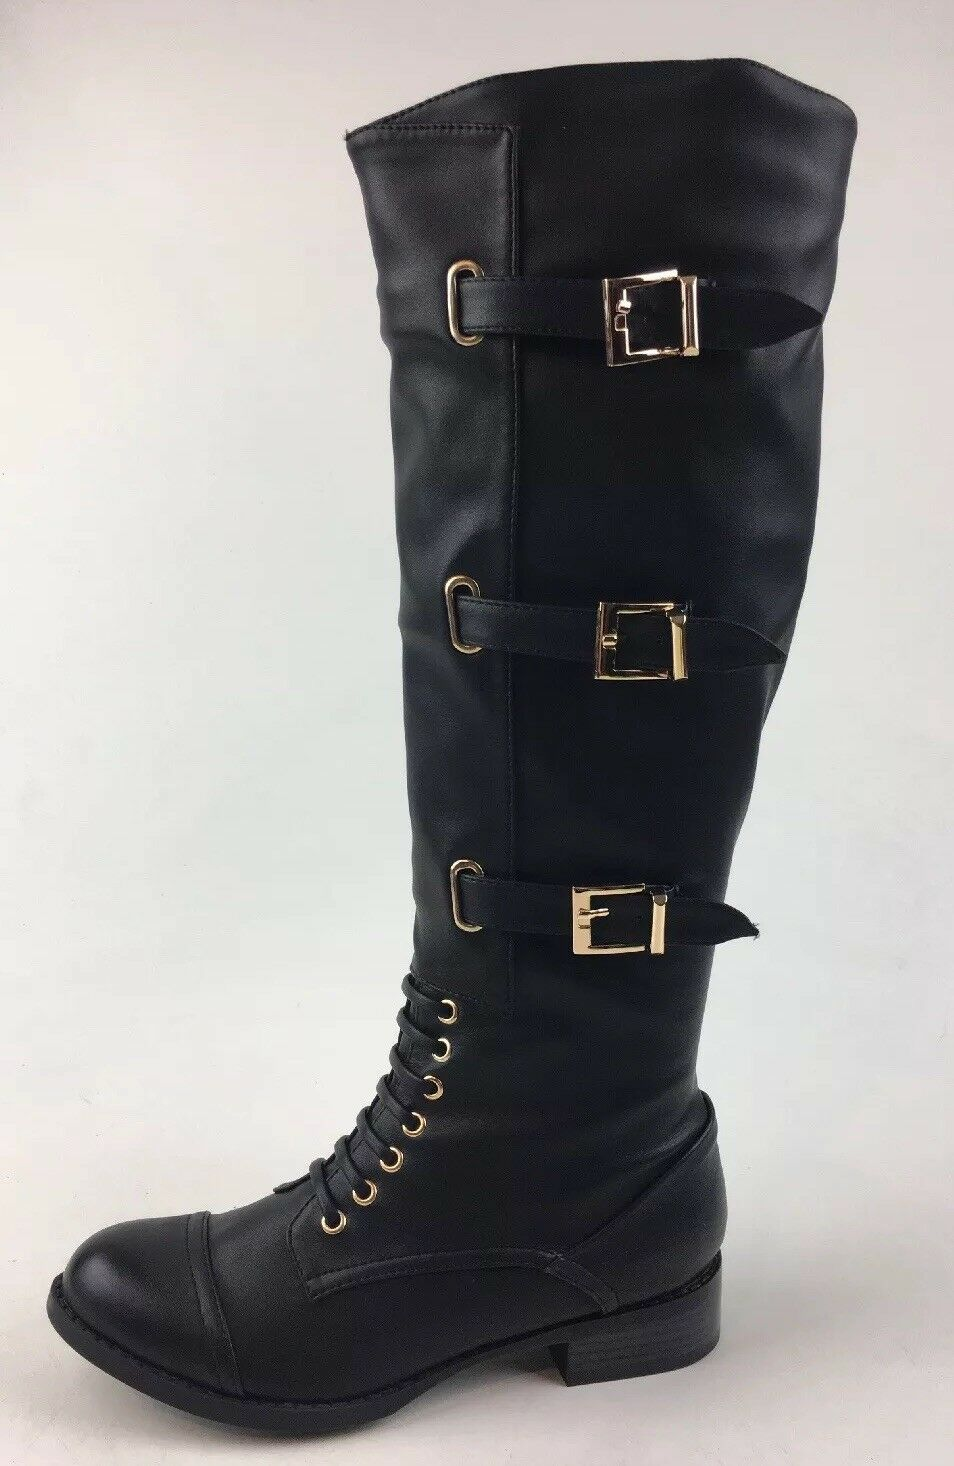 N.Y.L.A Women's Adrina Knee High Boots Size 7, Black 1226